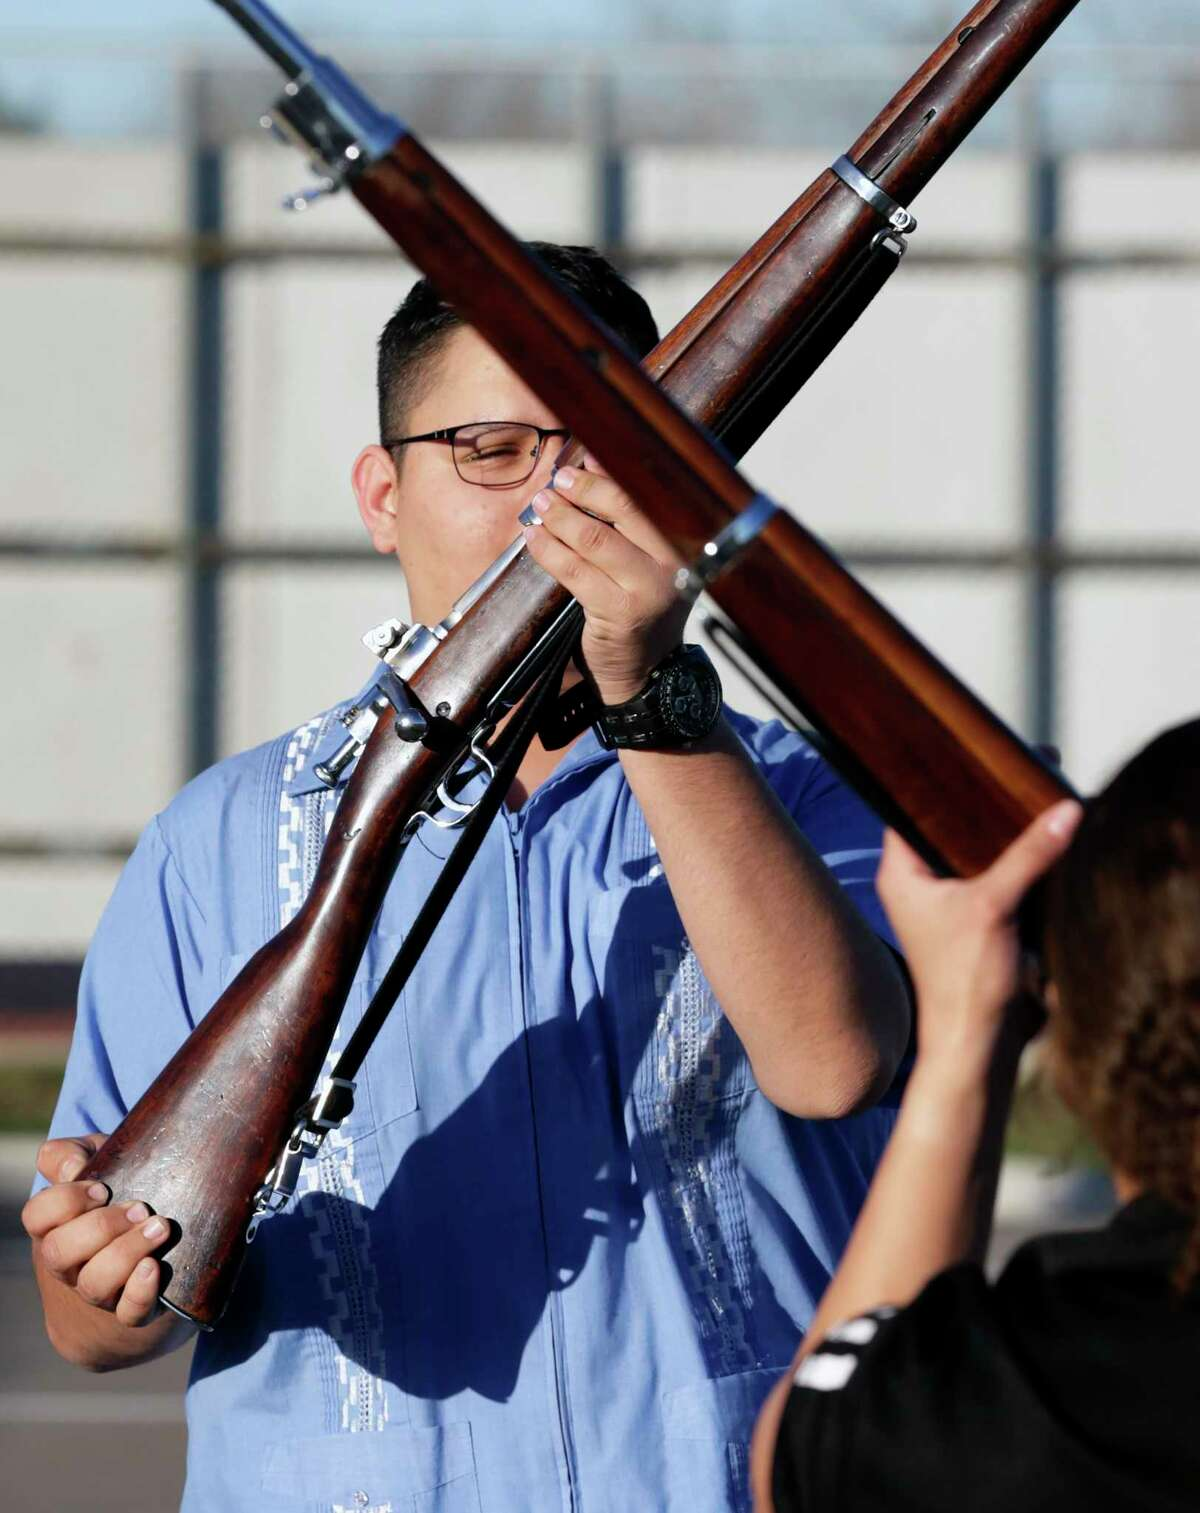 Alejandro Lopez manuevers his rifle this week as the East Central High School color guard practices for the Army JROTC National Drill Championship in March.